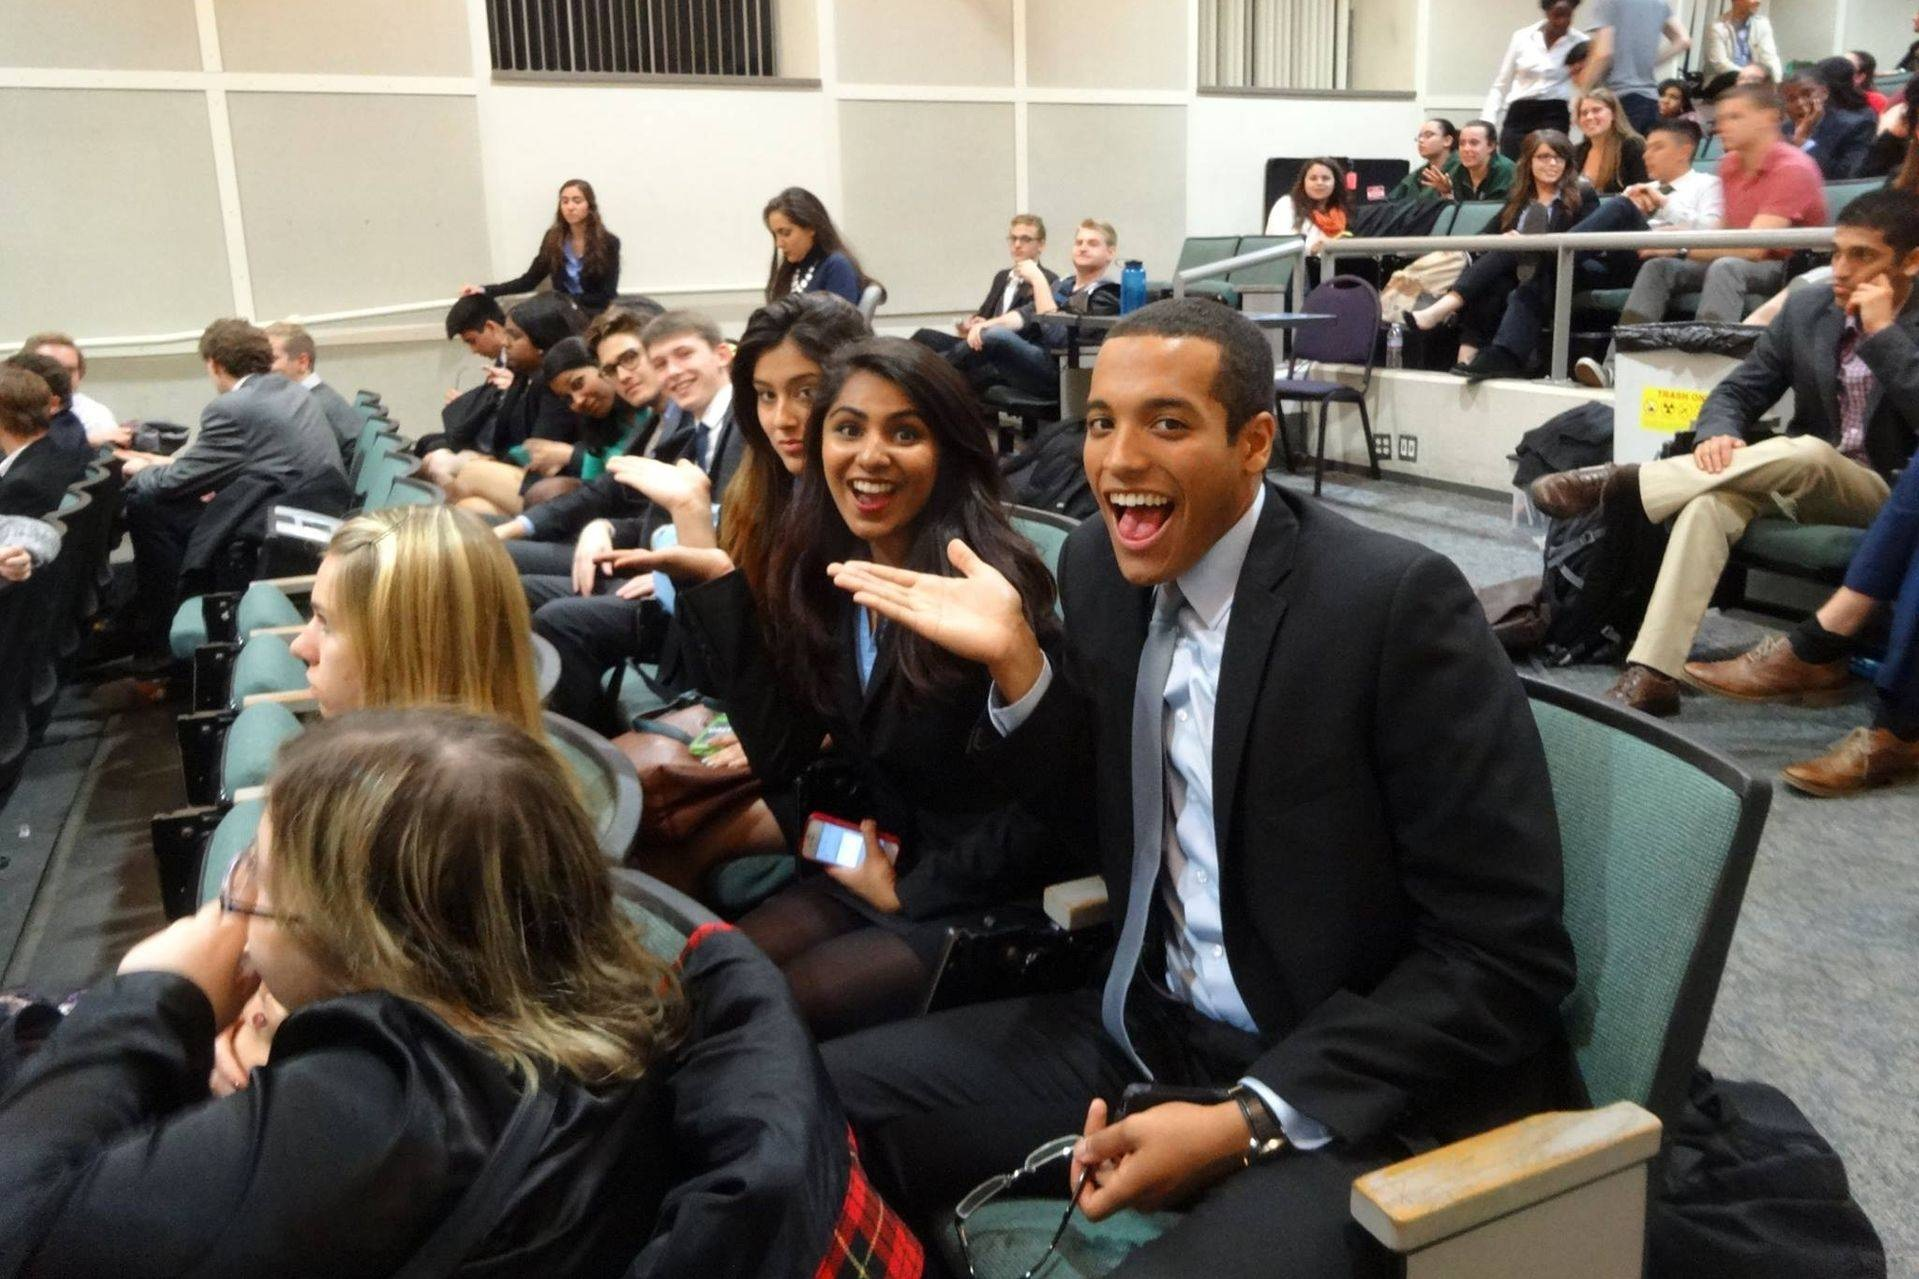 AAMTI (11/8 - 11/9) - Cal Mock Trial kicks off the year strong, competing at our own Inaugural Average American Mock Trial Invitational (AAMTI)! Our two teams took 2nd Place (with a record of 6-2) and 6th Place (with a record of 5-3) overall! Congrats to the following members who also took home 4 individual awards...Bobbie Dousa, Outstanding Witness with 18/20 ranks.Vaughn Okerlund, Outstanding Witness with 18/20 ranks; his first college mock trial career award!Nisha Srinivasa, Outstanding Witness with 18/20 ranks AND Outstanding Attorney with a perfect 20/20 ranks; her first college mock trial career awards AND her first college mock trial career competition!